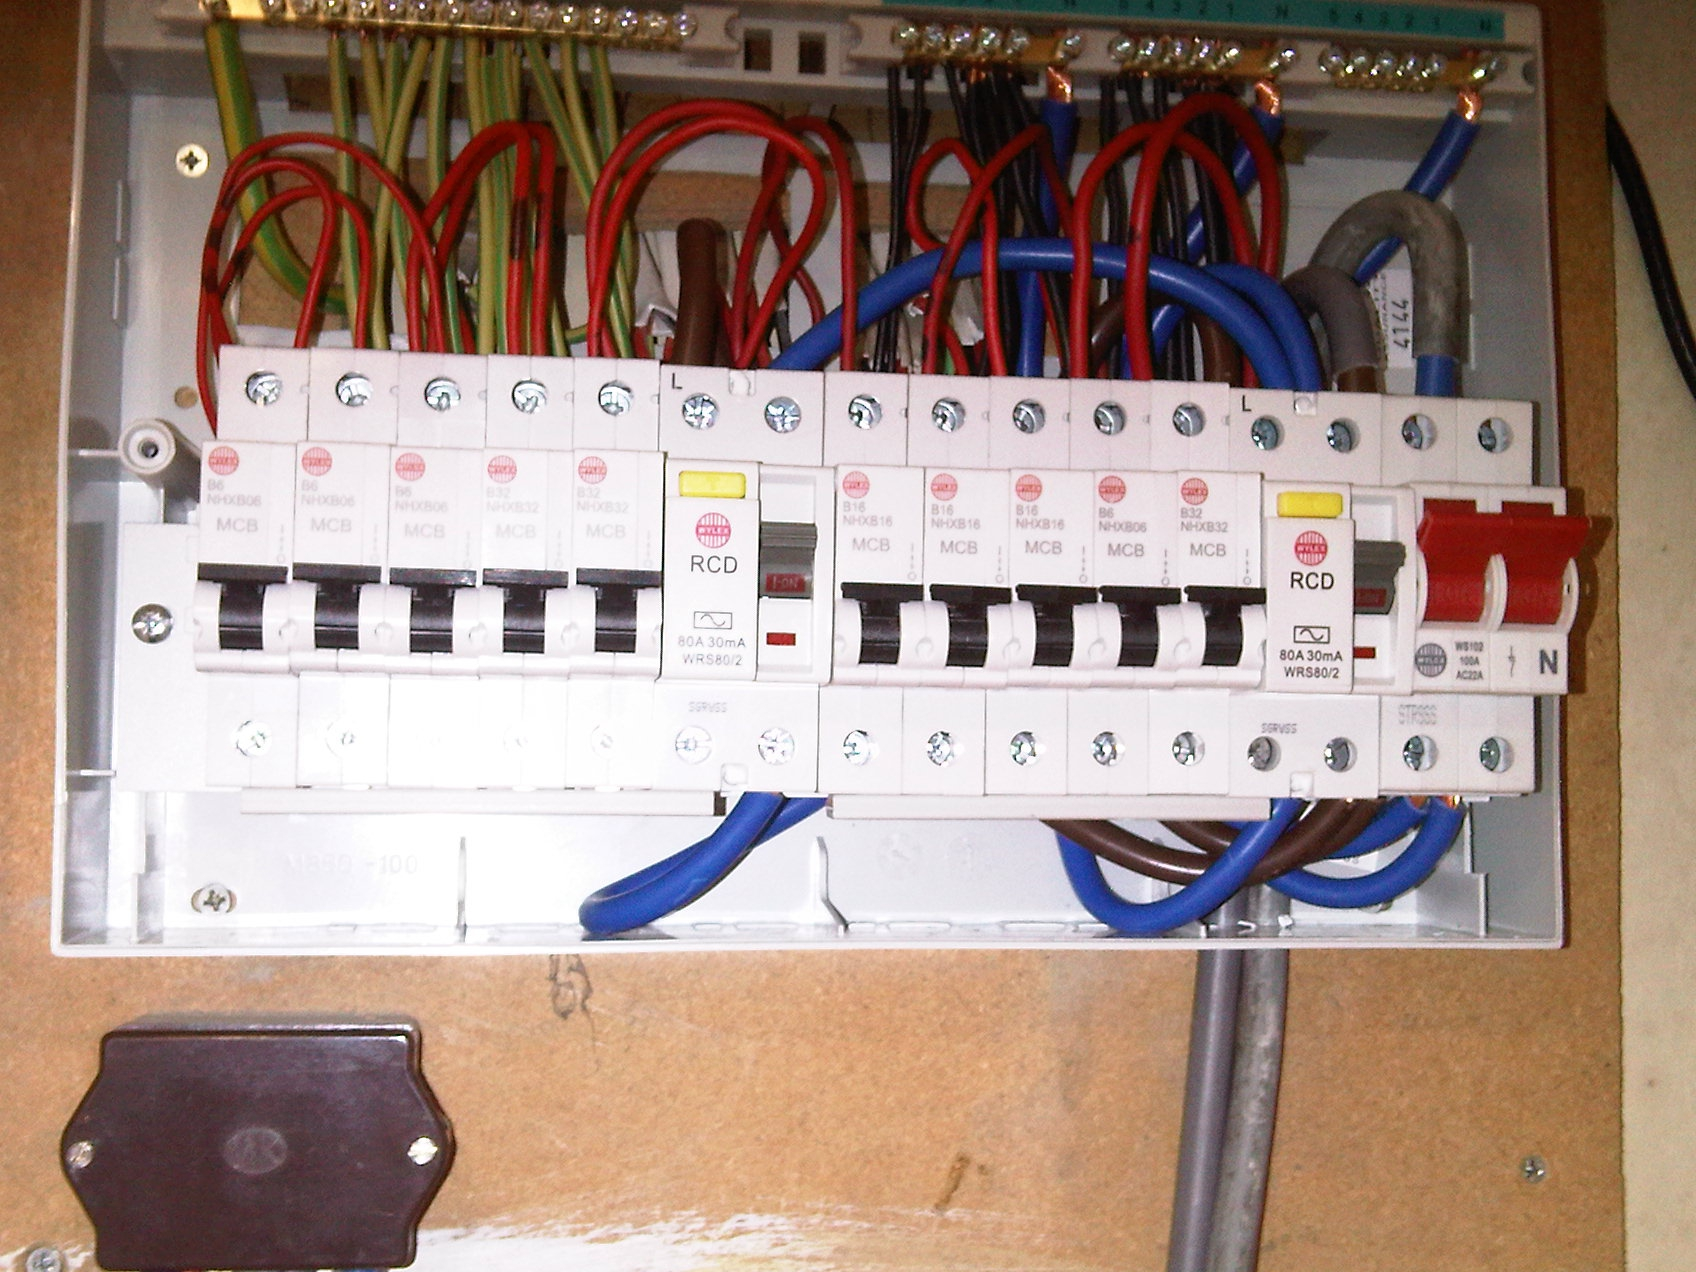 Fusebox 4 household fuse box residential fuse boxes \u2022 wiring diagrams j fuse box electrical supplies at fashall.co